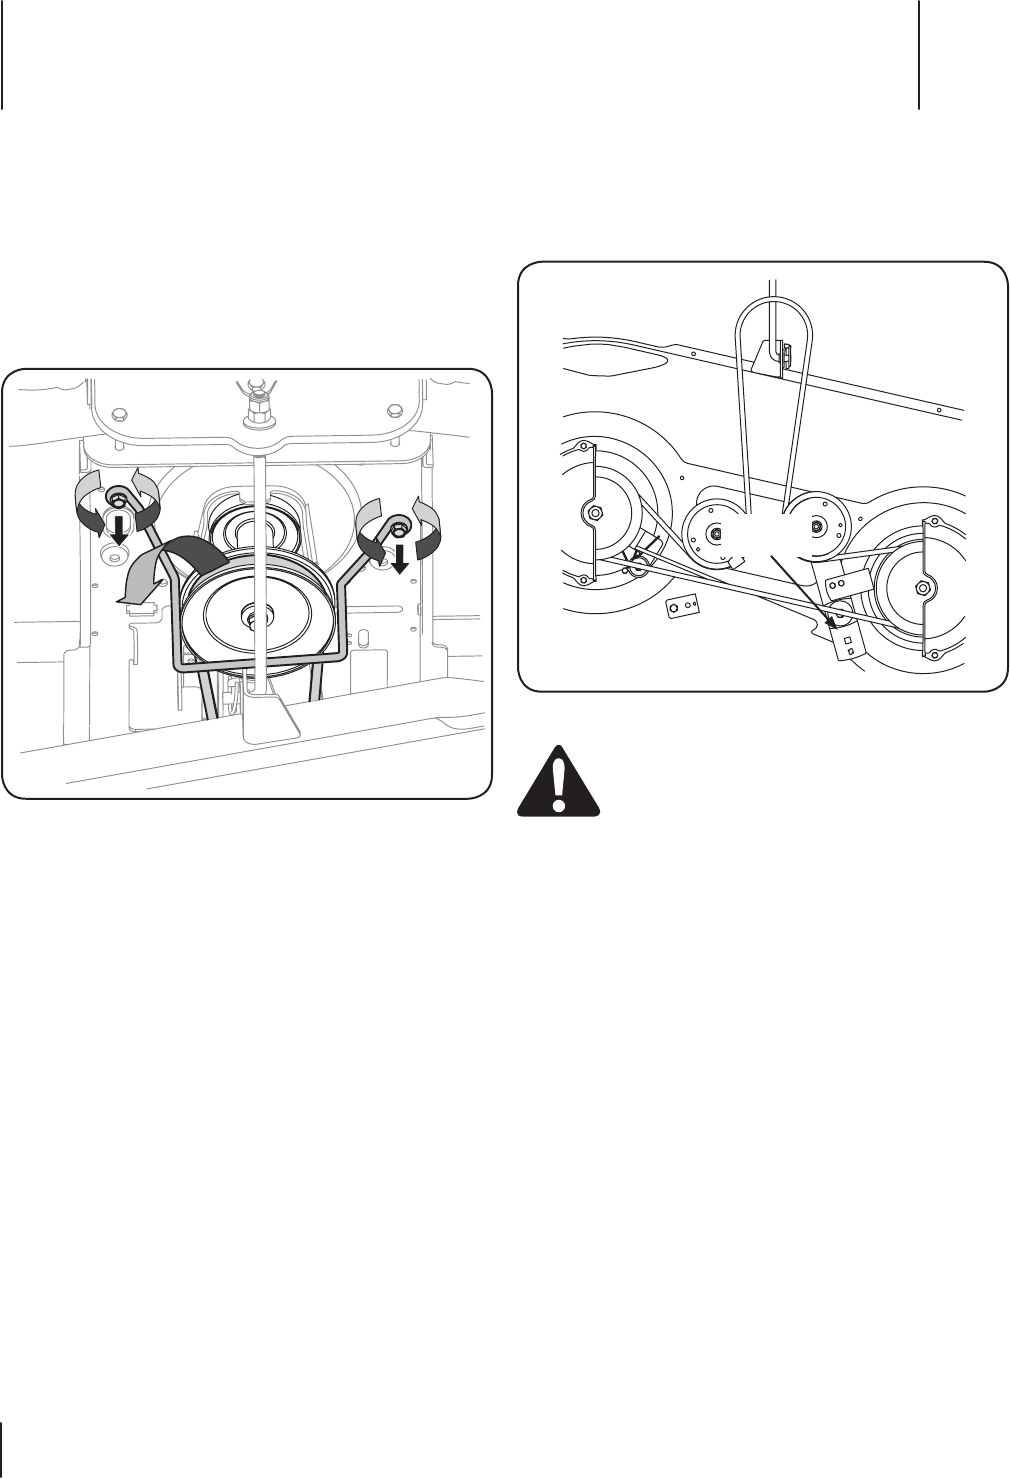 Page 24 of Cub Cadet Lawn Mower LTX1046 User Guide